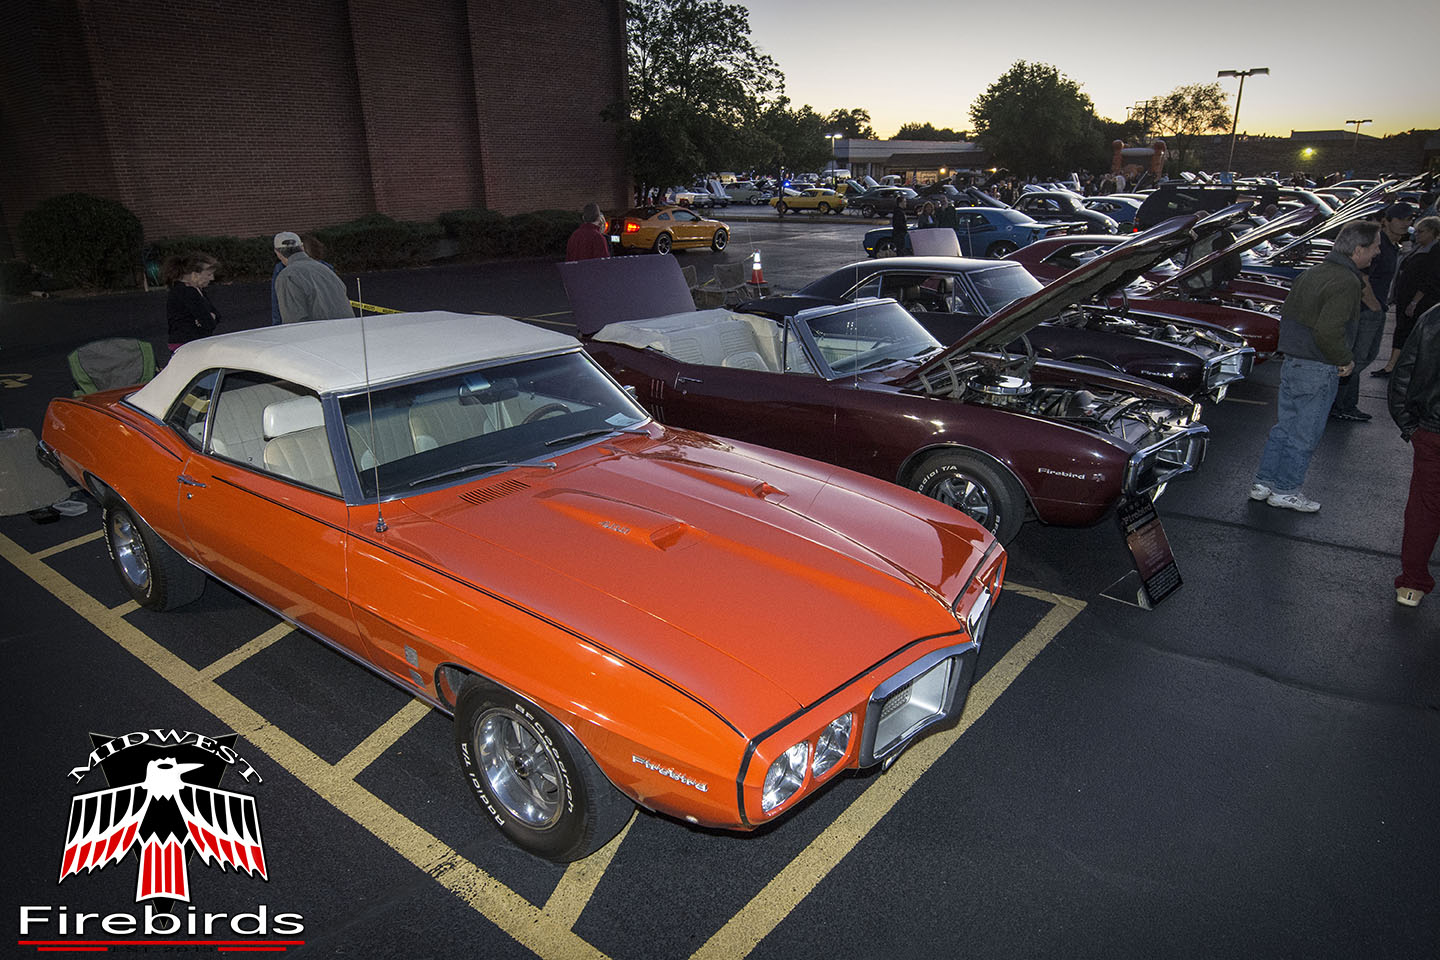 Firebirds parked at the 2013 Rolling Meadows cruise night in Rolling Meadows, IL.